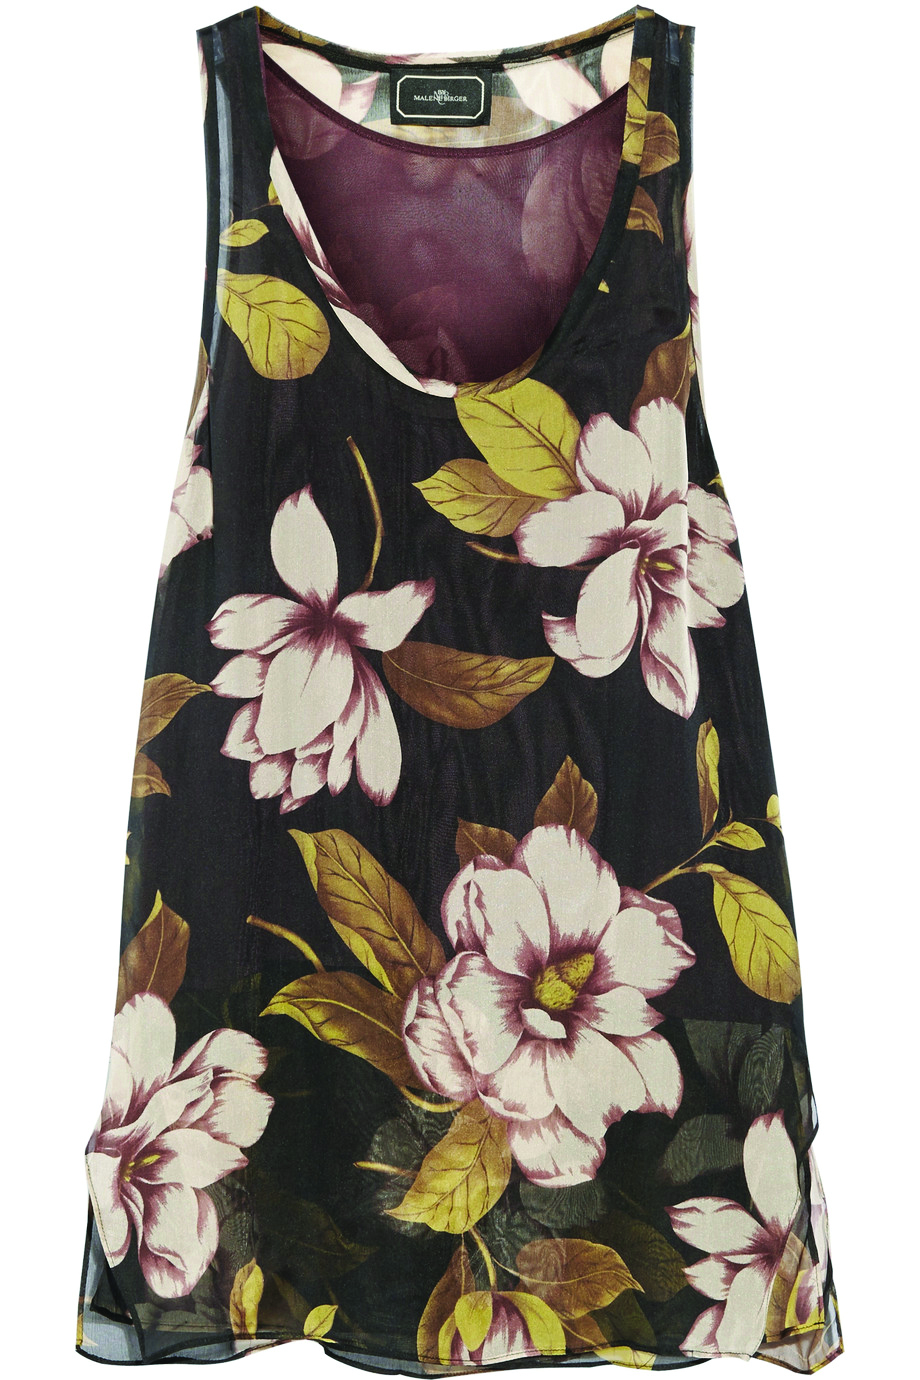 Malene Birger Floral-Print Silk Top. USD$268 Inspired by vintage floral patterns, this boho print pops on a black ground. Wear this hothouse tank with a structured black suit or leather leggings. At Net-a-Porter